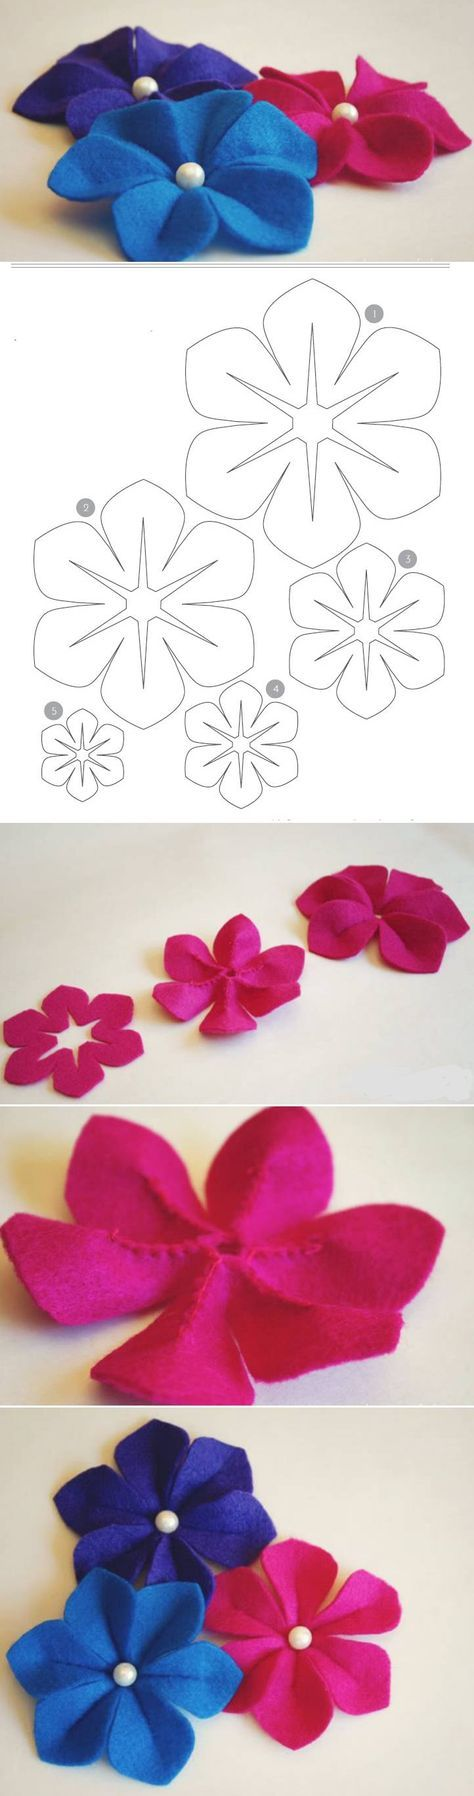 DIY Easy Felt Flower...Cutting is the hardest part to making this pretty little flower...A small decorative button also looks nice in the center.